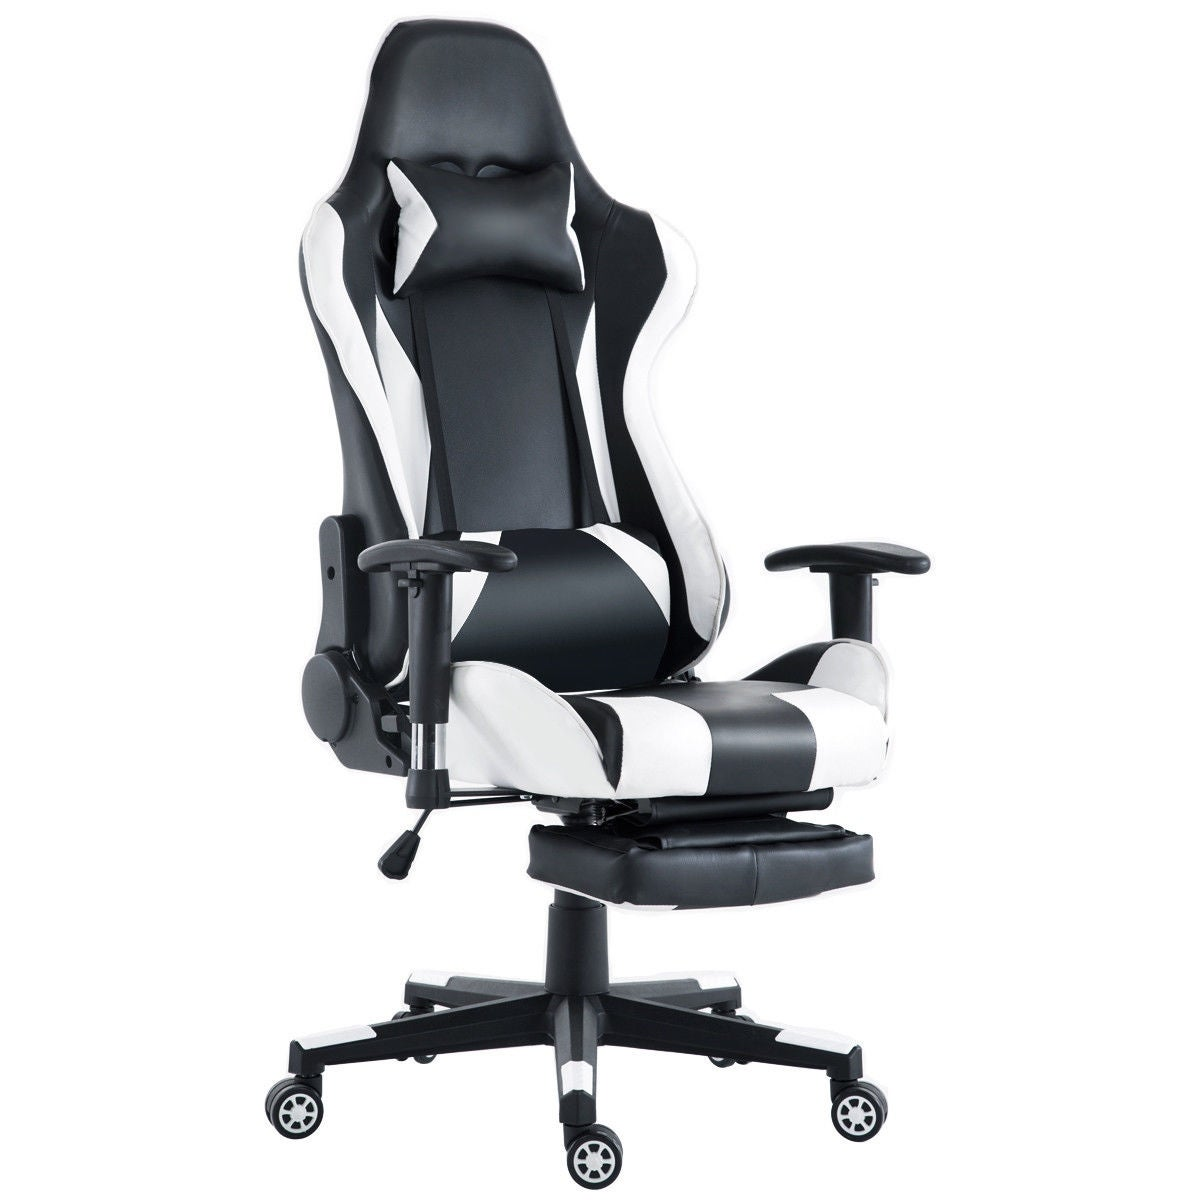 Buy Lumbar Support Office U0026 Conference Room Chairs Online At Overstock.com  | Our Best Home Office Furniture Deals